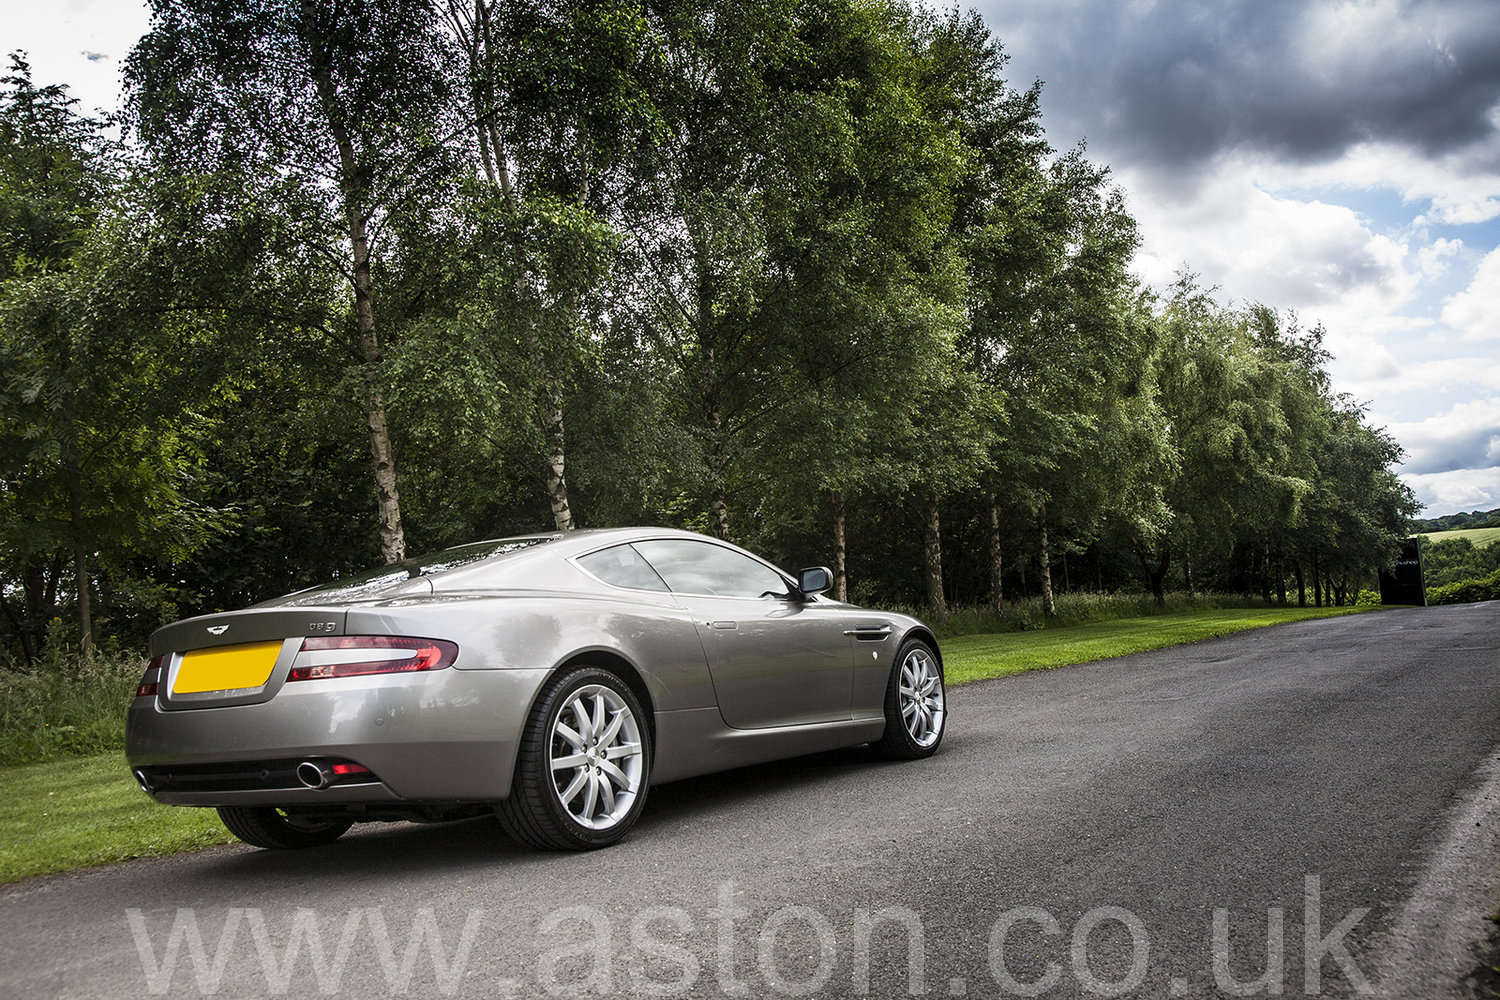 2007 Aston Martin DB9 Coupe SOLD (picture 2 of 6)